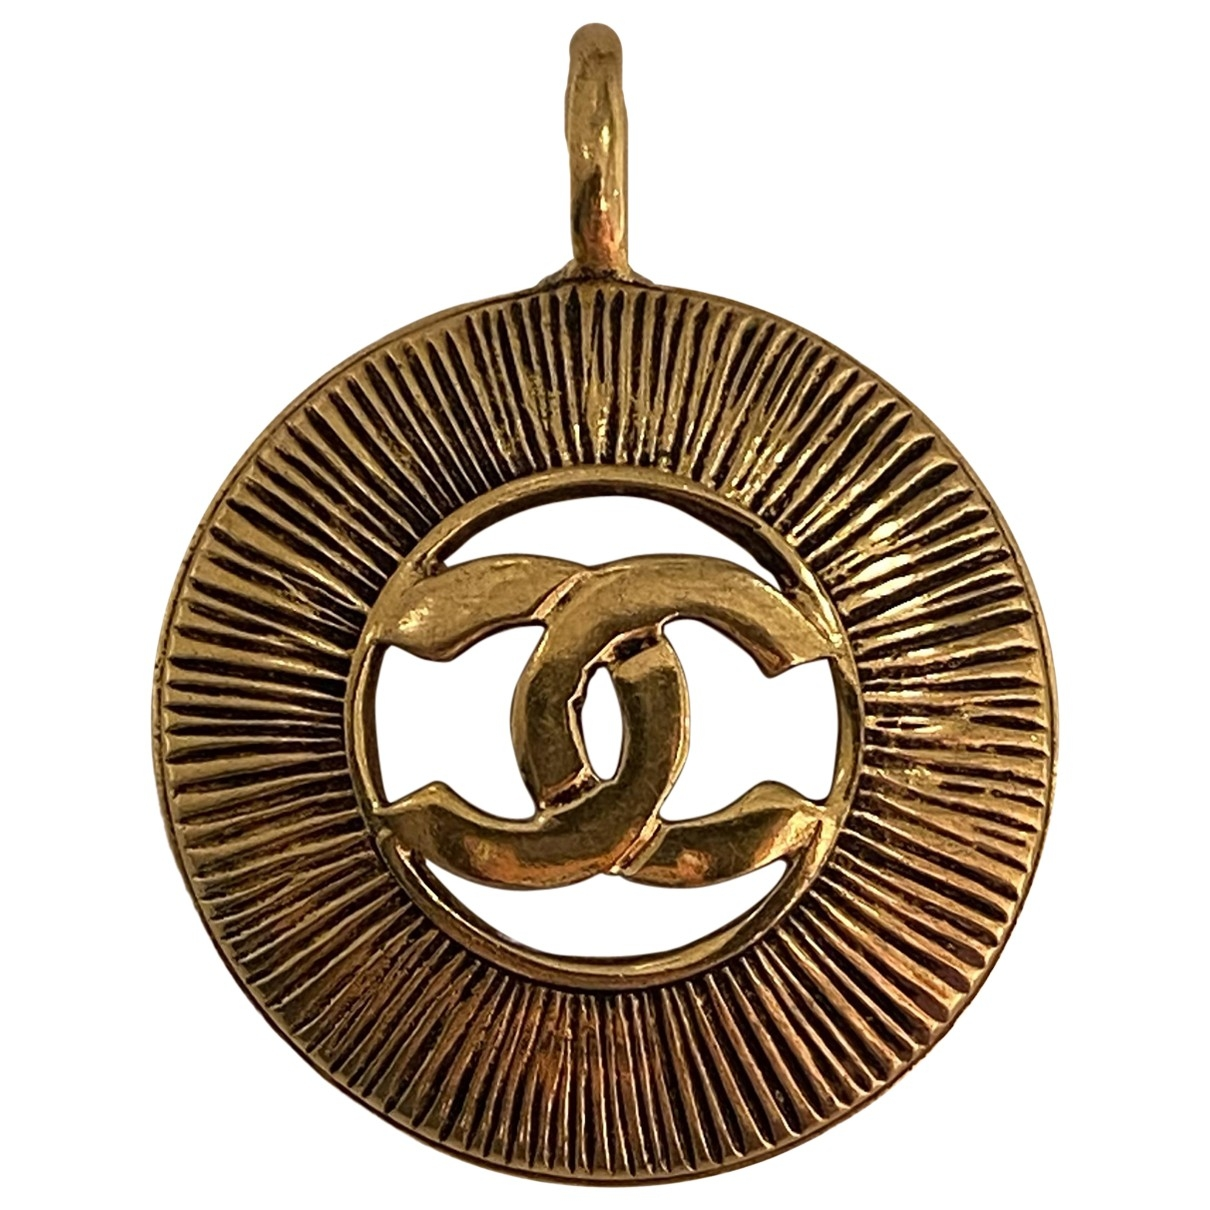 Chanel \N Gold Metal pendant for Women \N